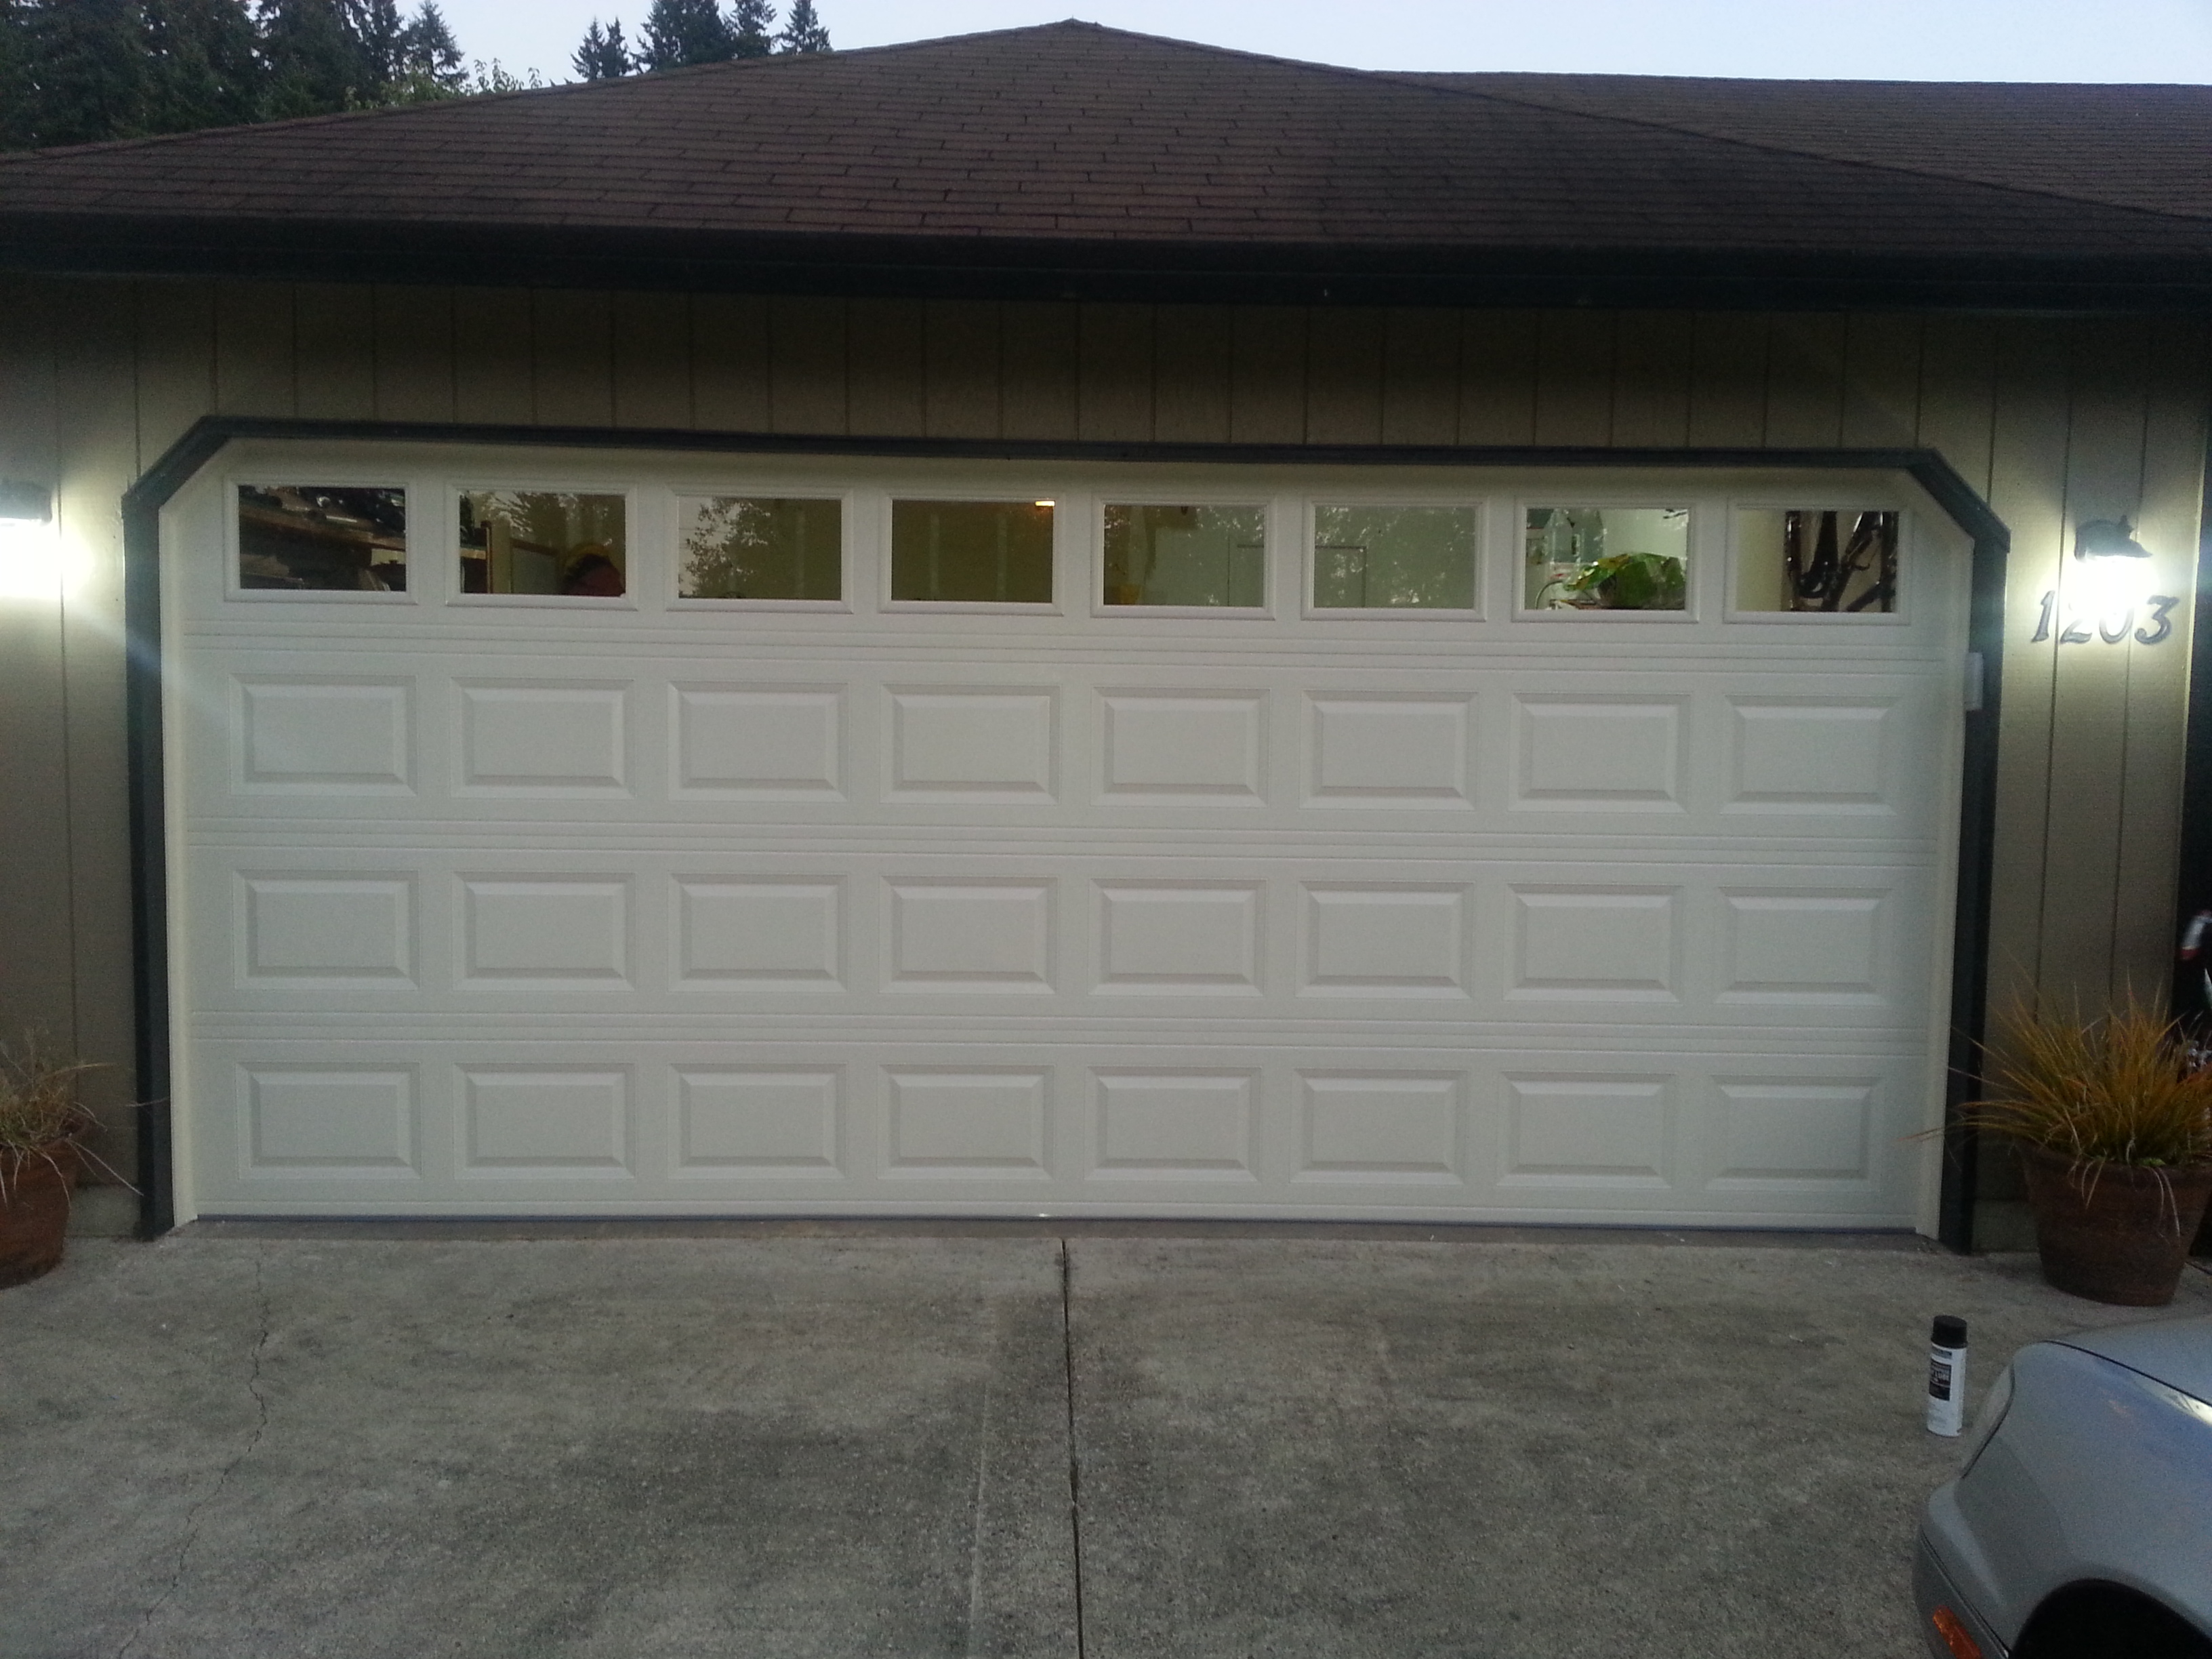 Superbe Coast To Coast Garage Door LLC 7209 NE 126th Ct, Vancouver, WA 98682    YP.com